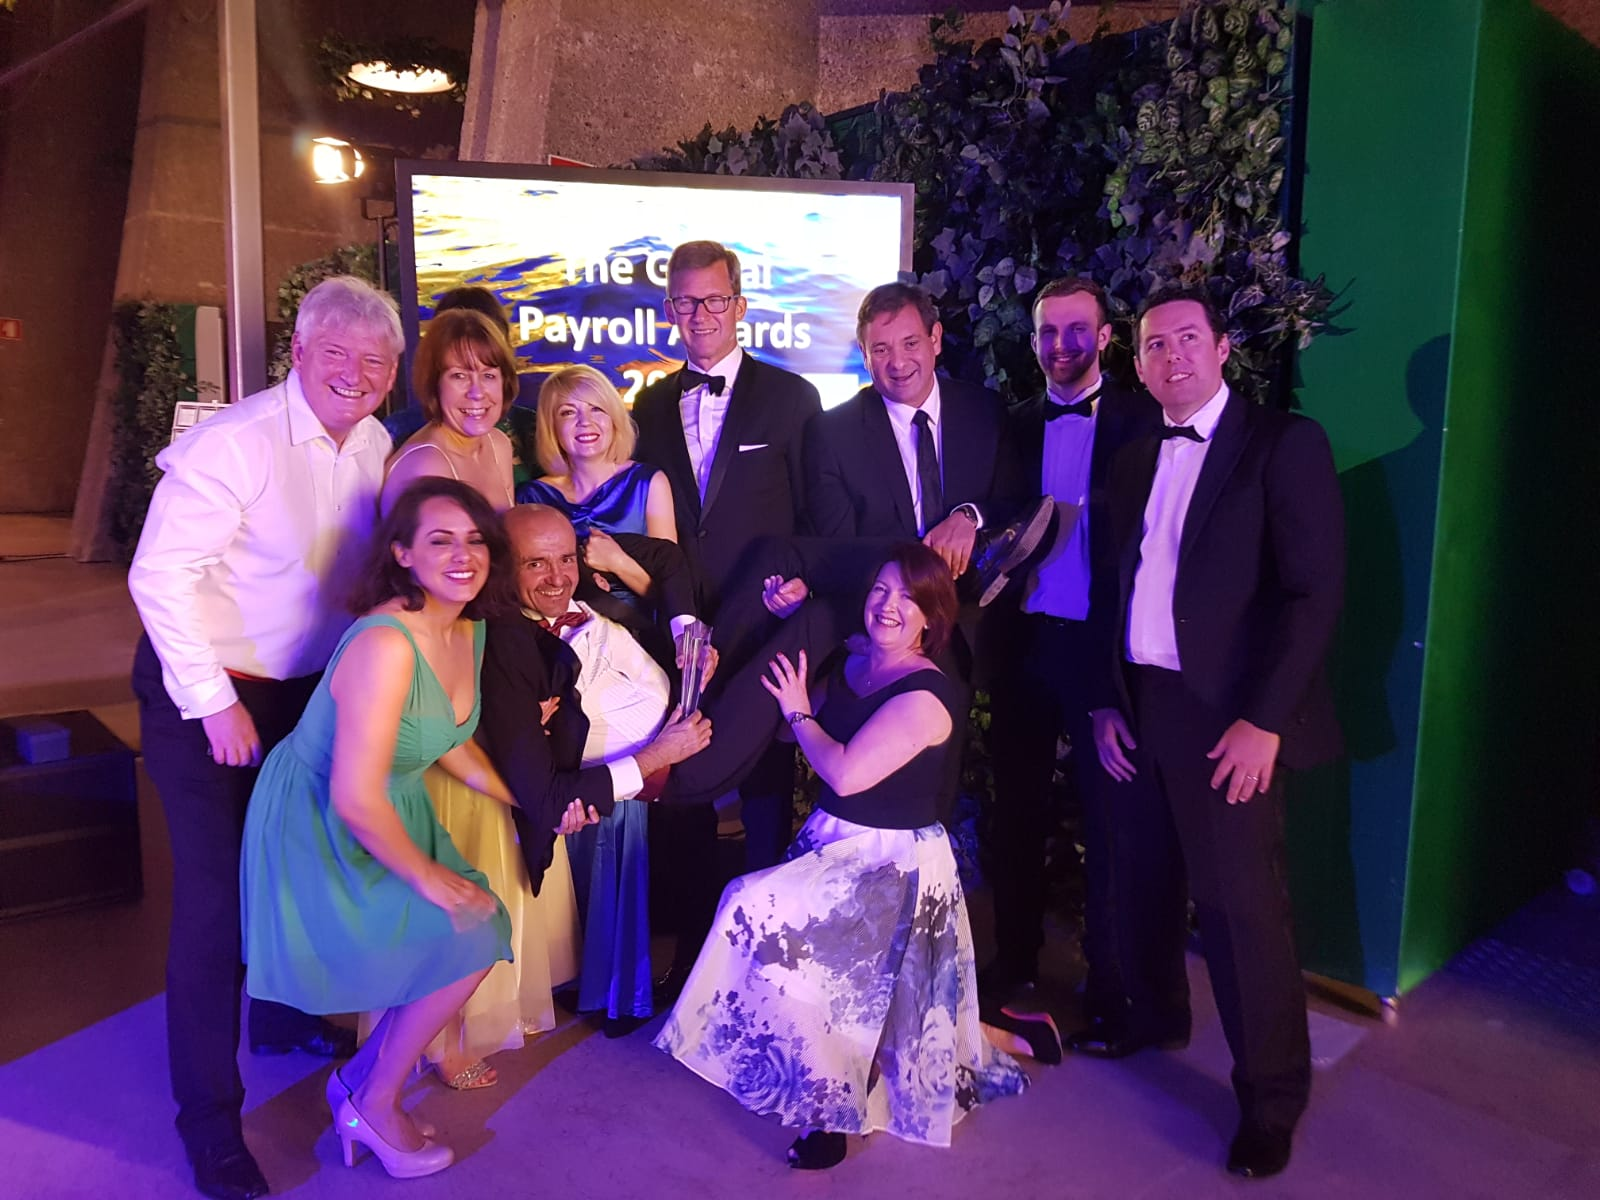 Cintra HR & Payroll Services at the Global Payroll Awards